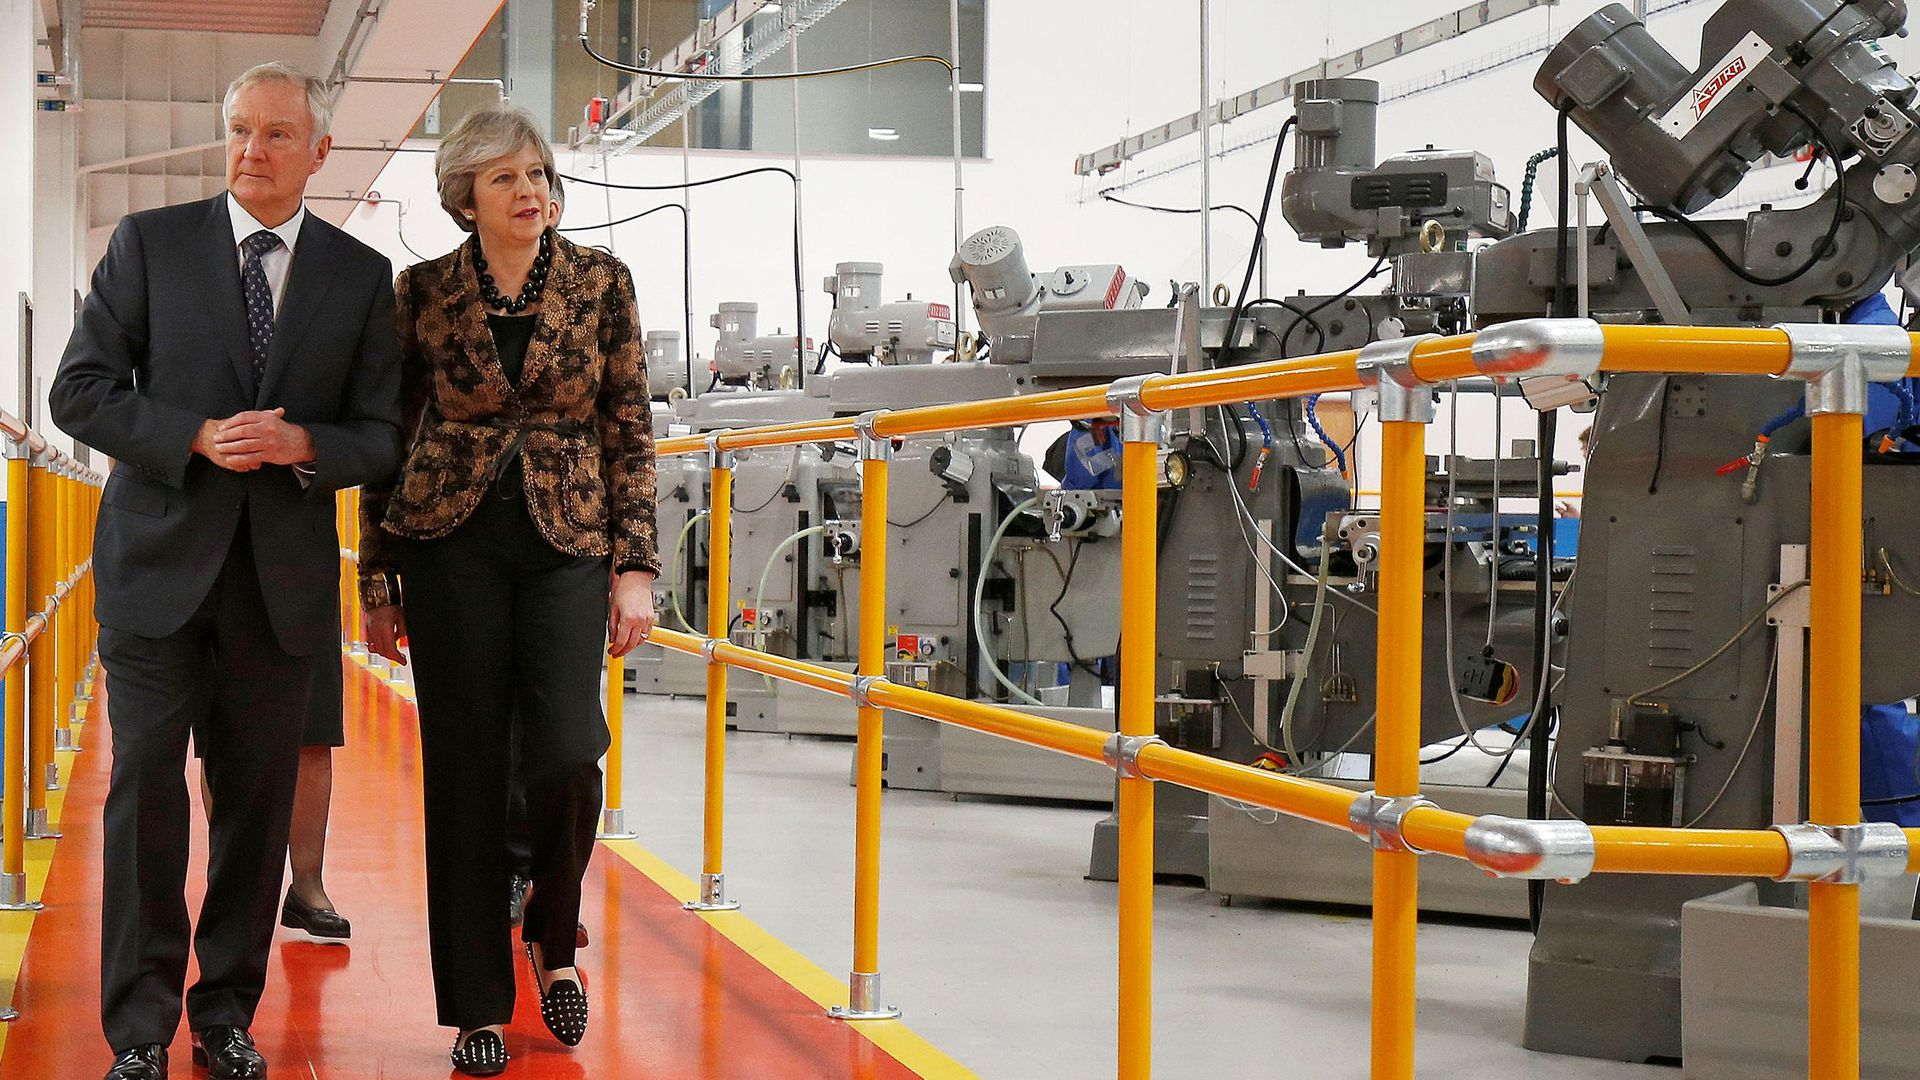 Theresa May visits an engineering facility.